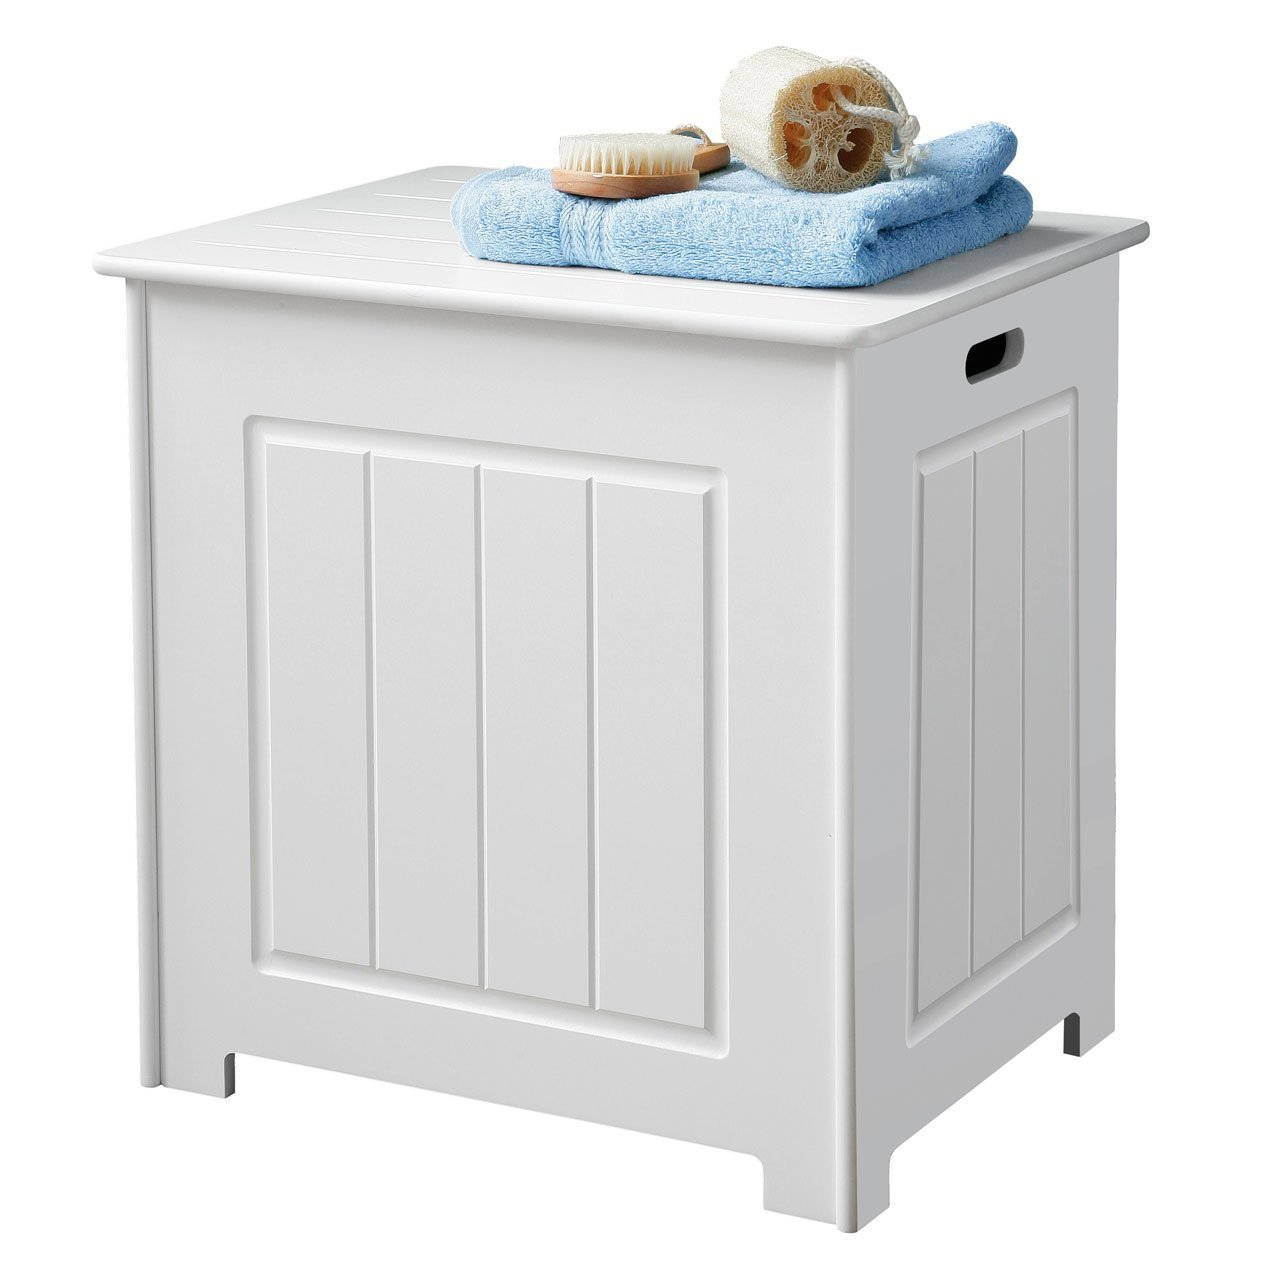 New Storage Chest Cabinet Wood White Basket Laundry Bin